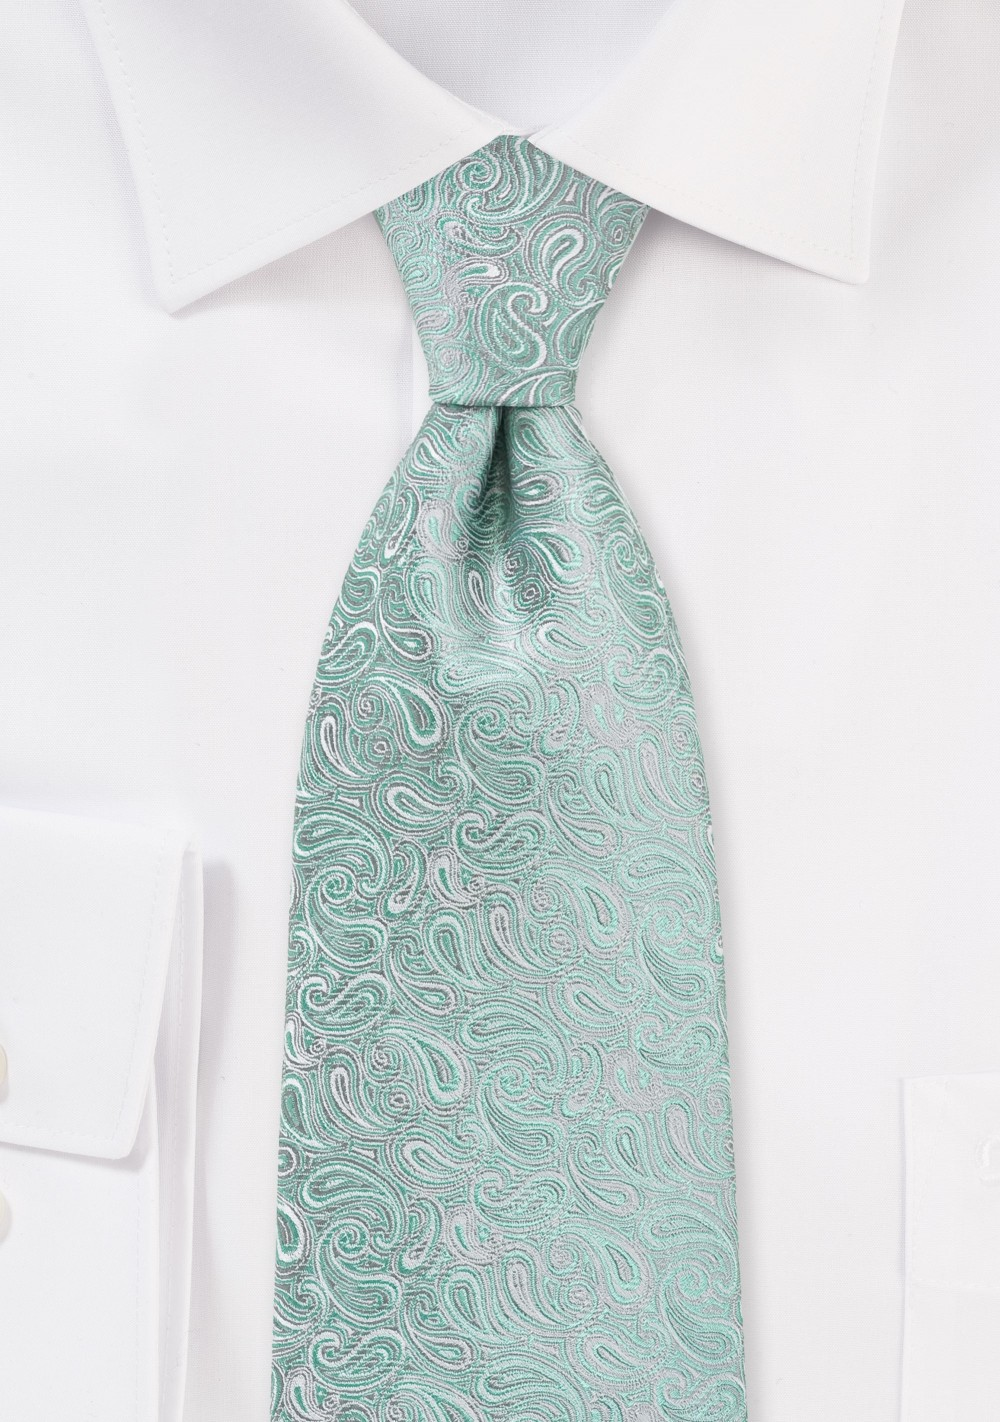 Kid Sized Modern Paisley Tie in Mint and Silver